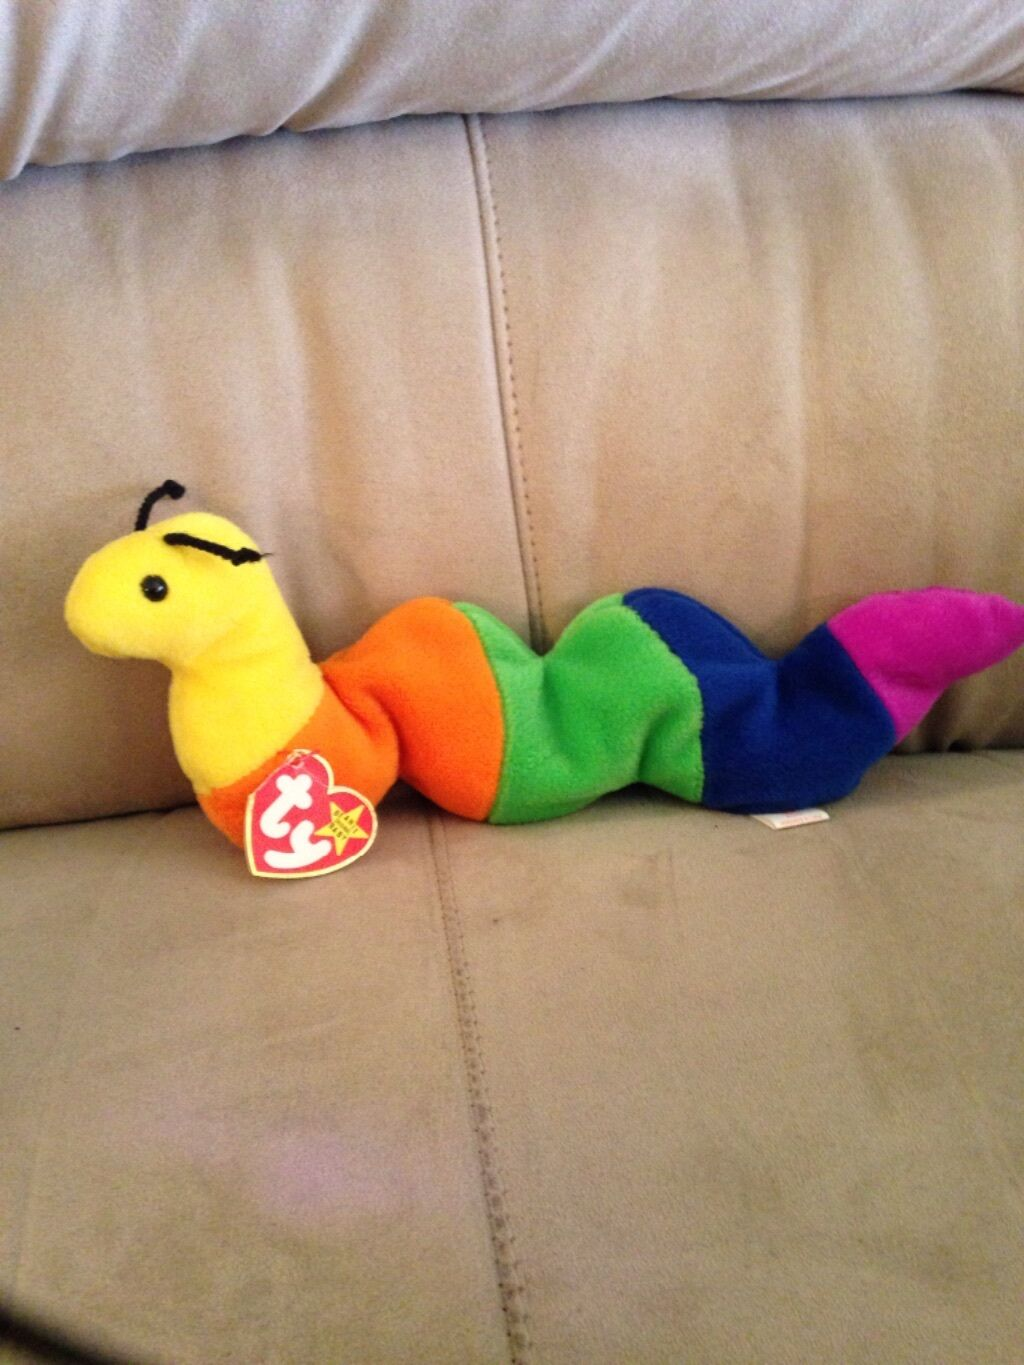 Must Sell       1995 Beanie Baby Inch P.V.C. Pellets